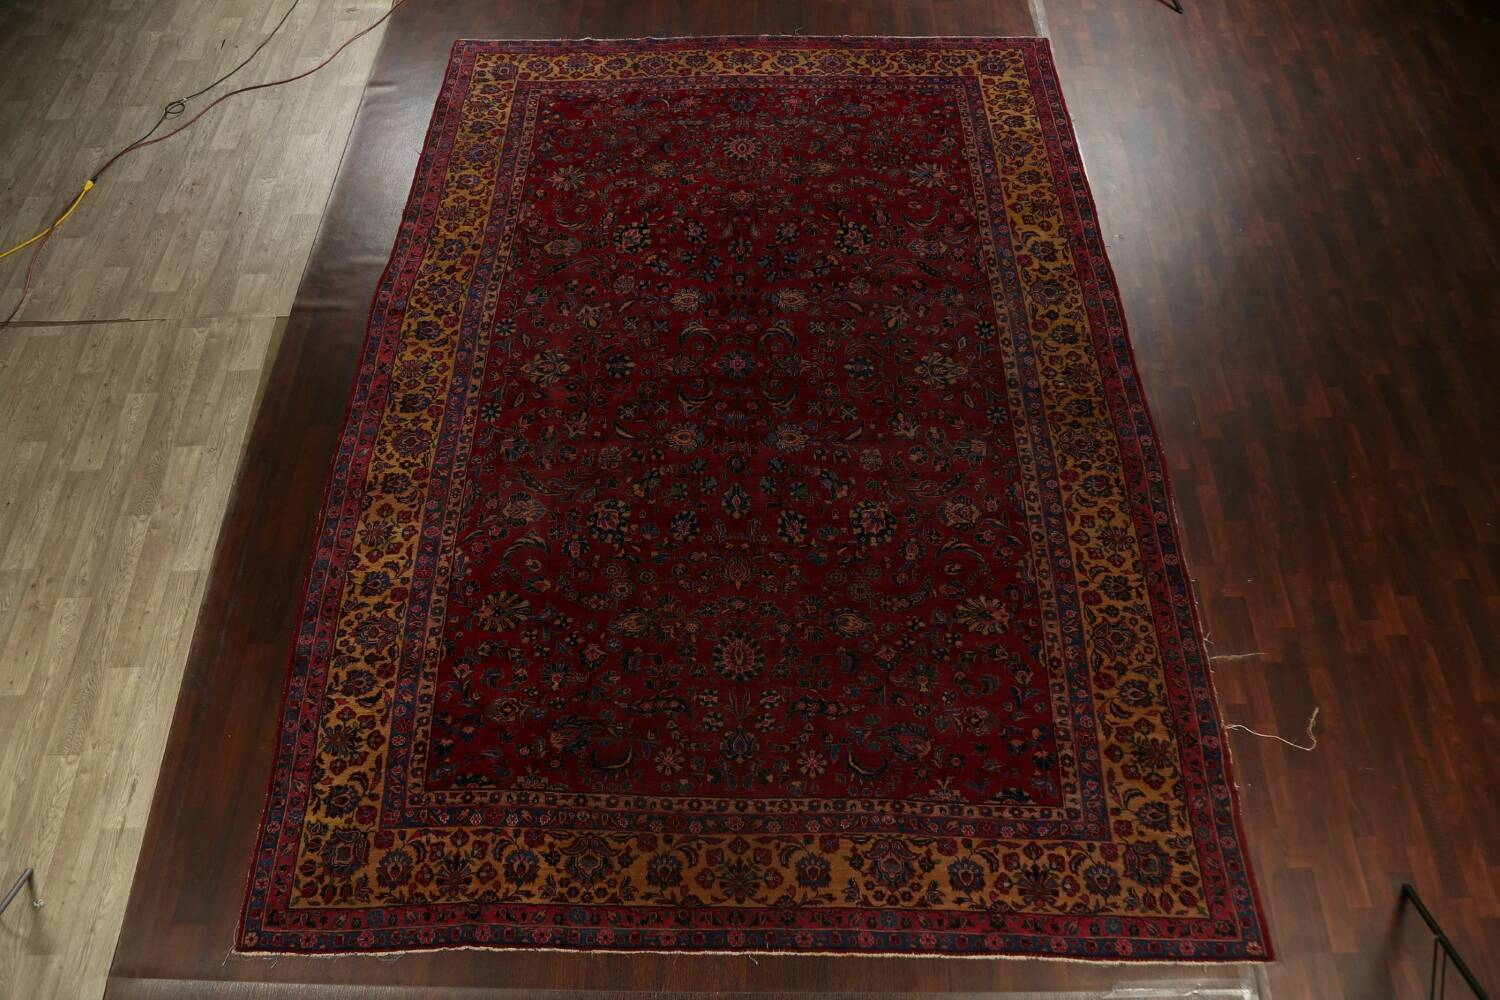 Pre-1900 Antique Vegetable Dye Sarouk Persian Area Rug 11x15 image 16